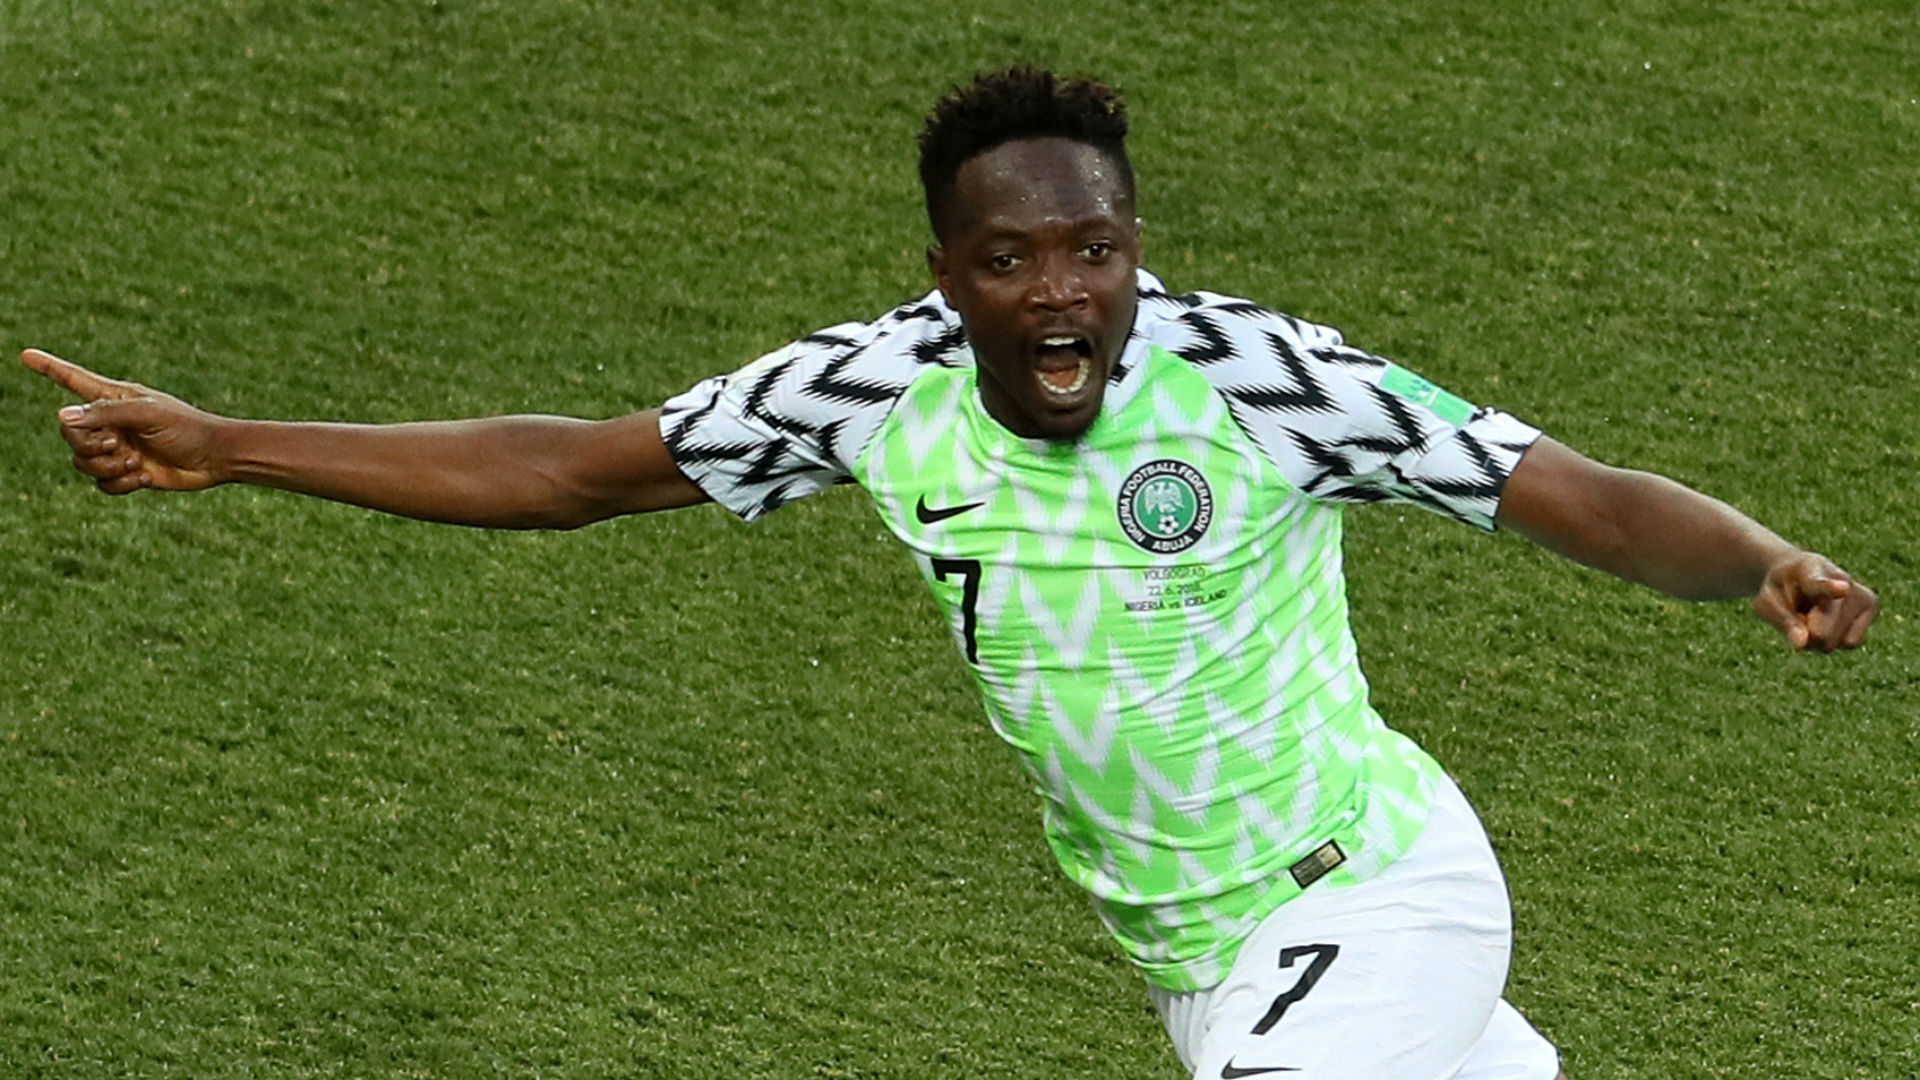 Musa 'was crying while playing' - Ex-Leicester City winger on journey to stardom